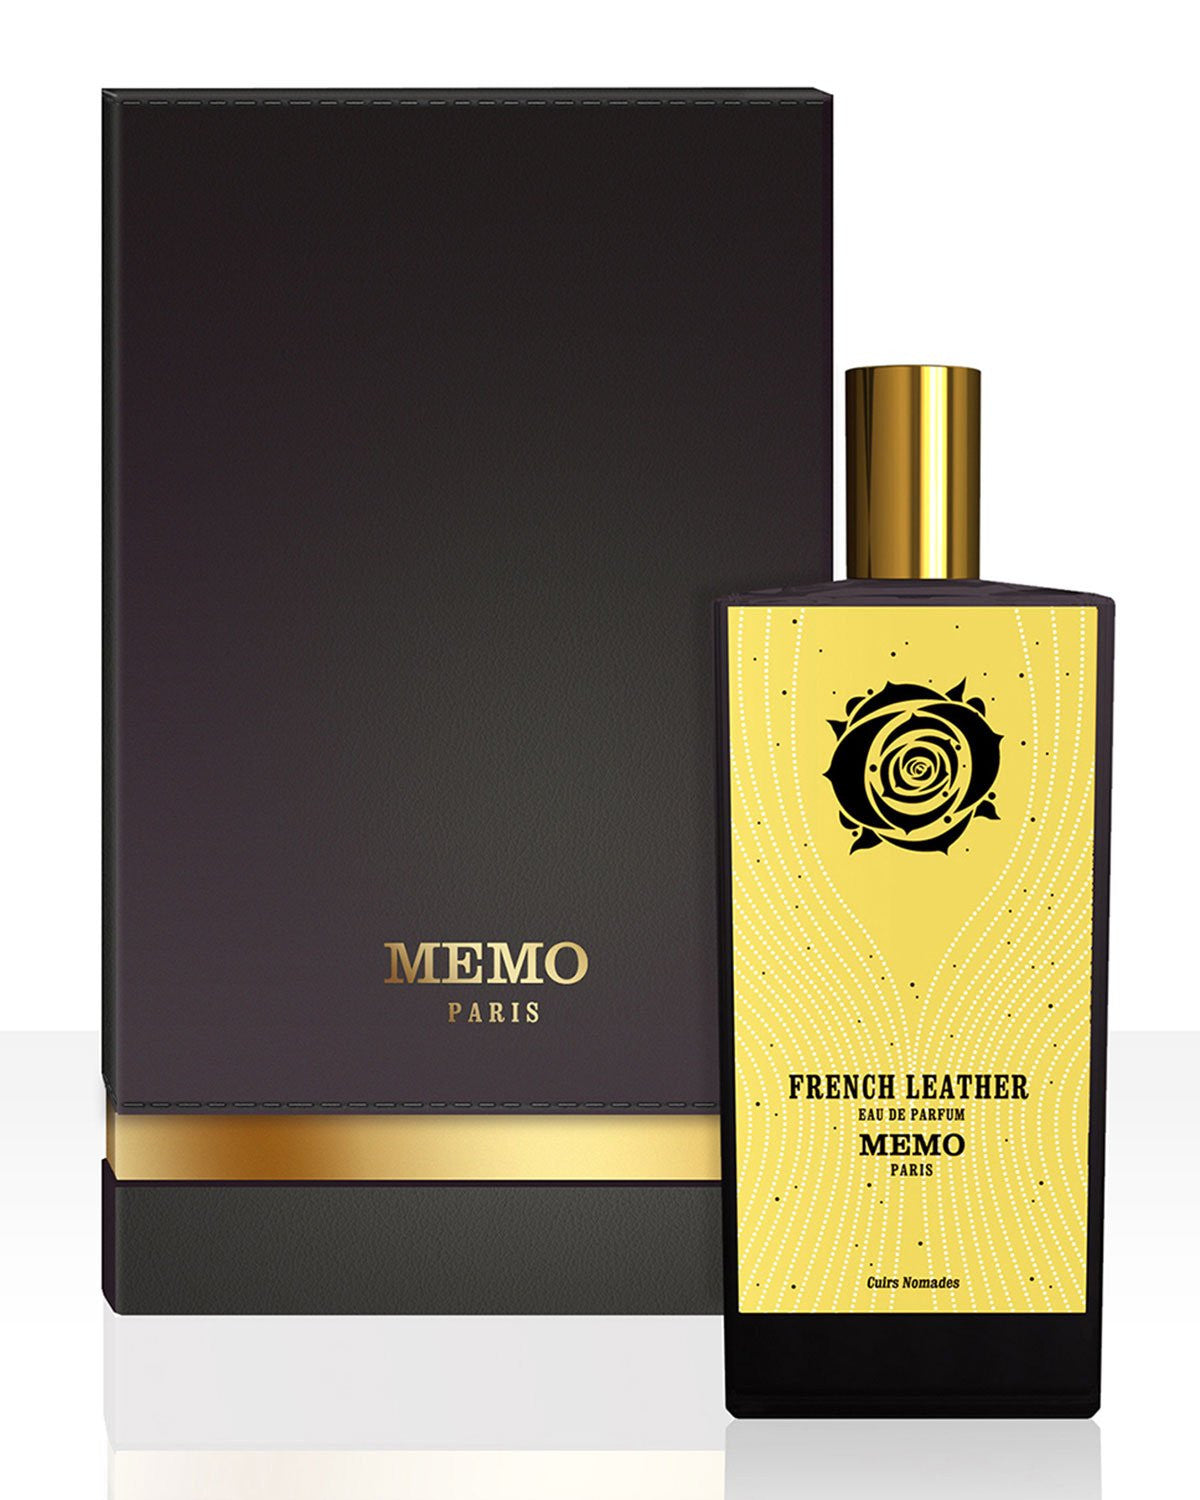 French Leather Eau de Parfum by Memo Paris - markaperfumery